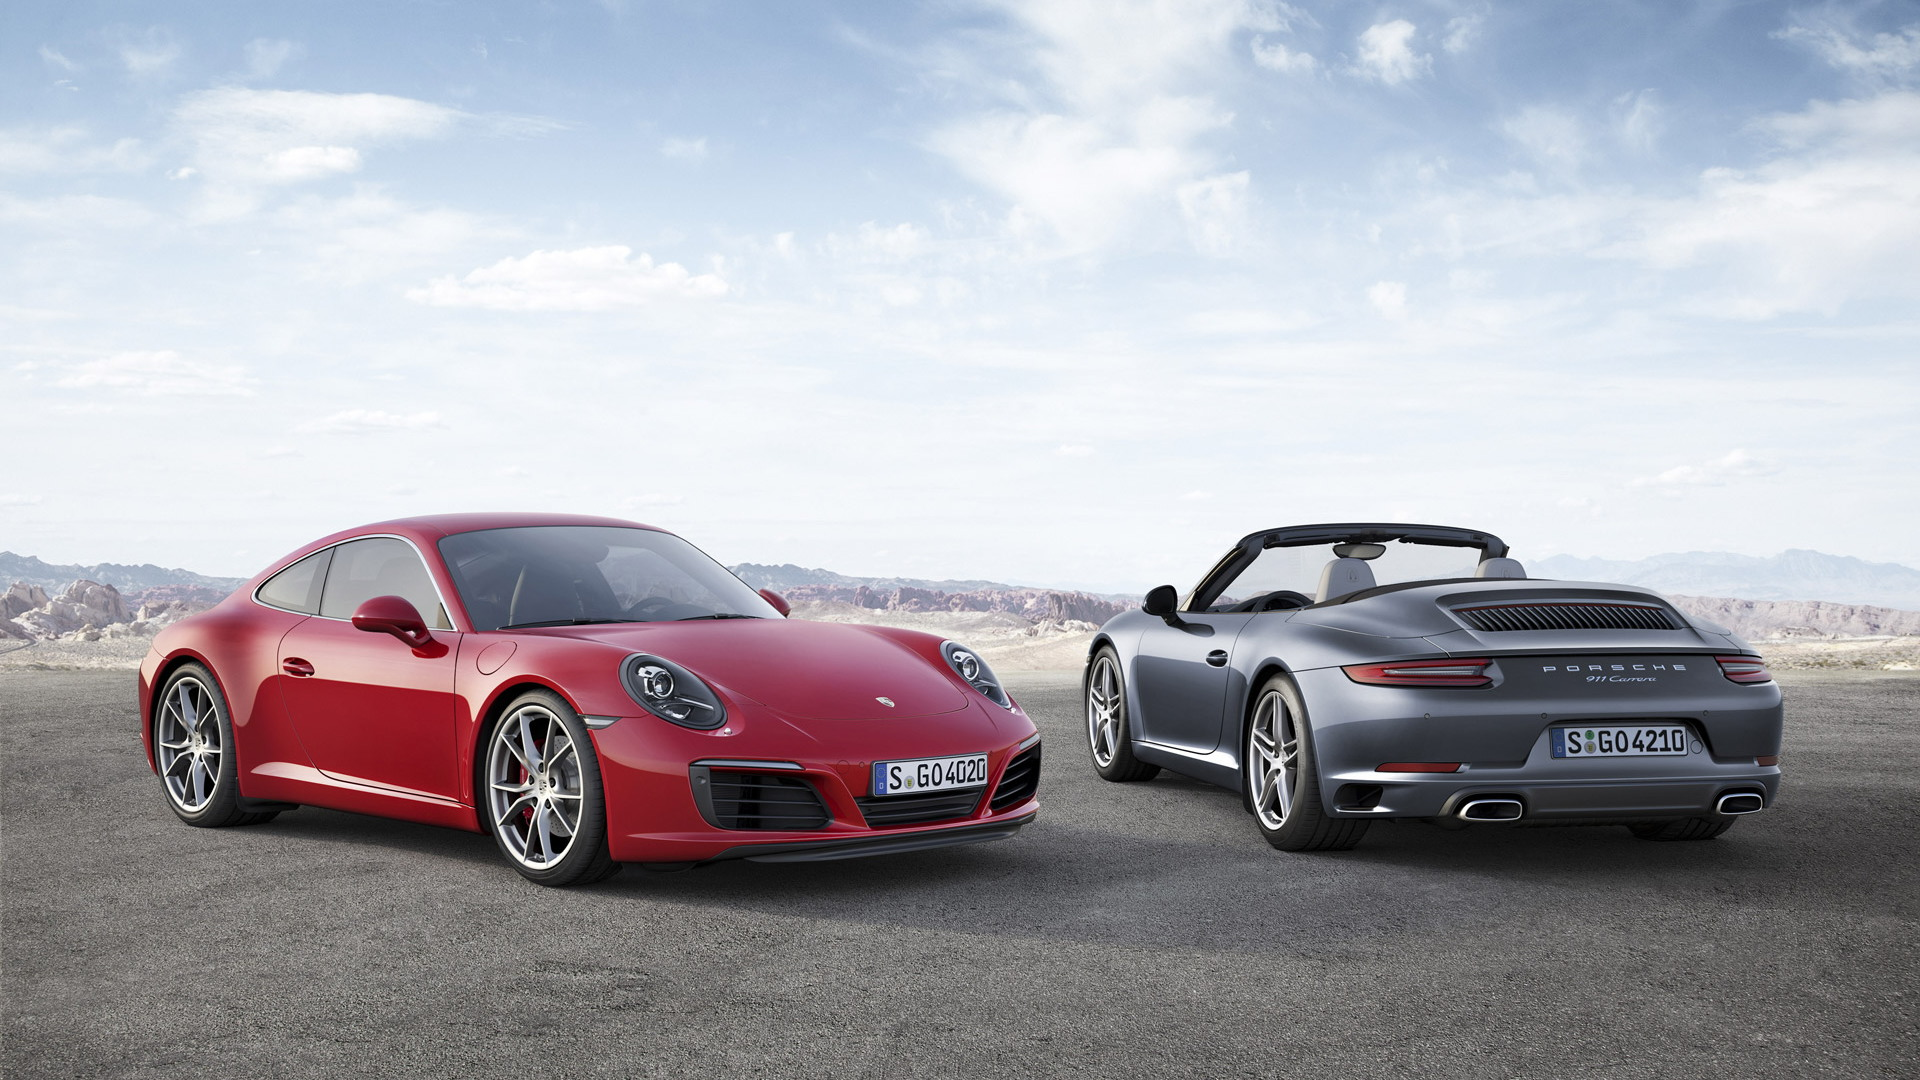 2017 Porsche 911 Carrera S and Carrera Cabriolet